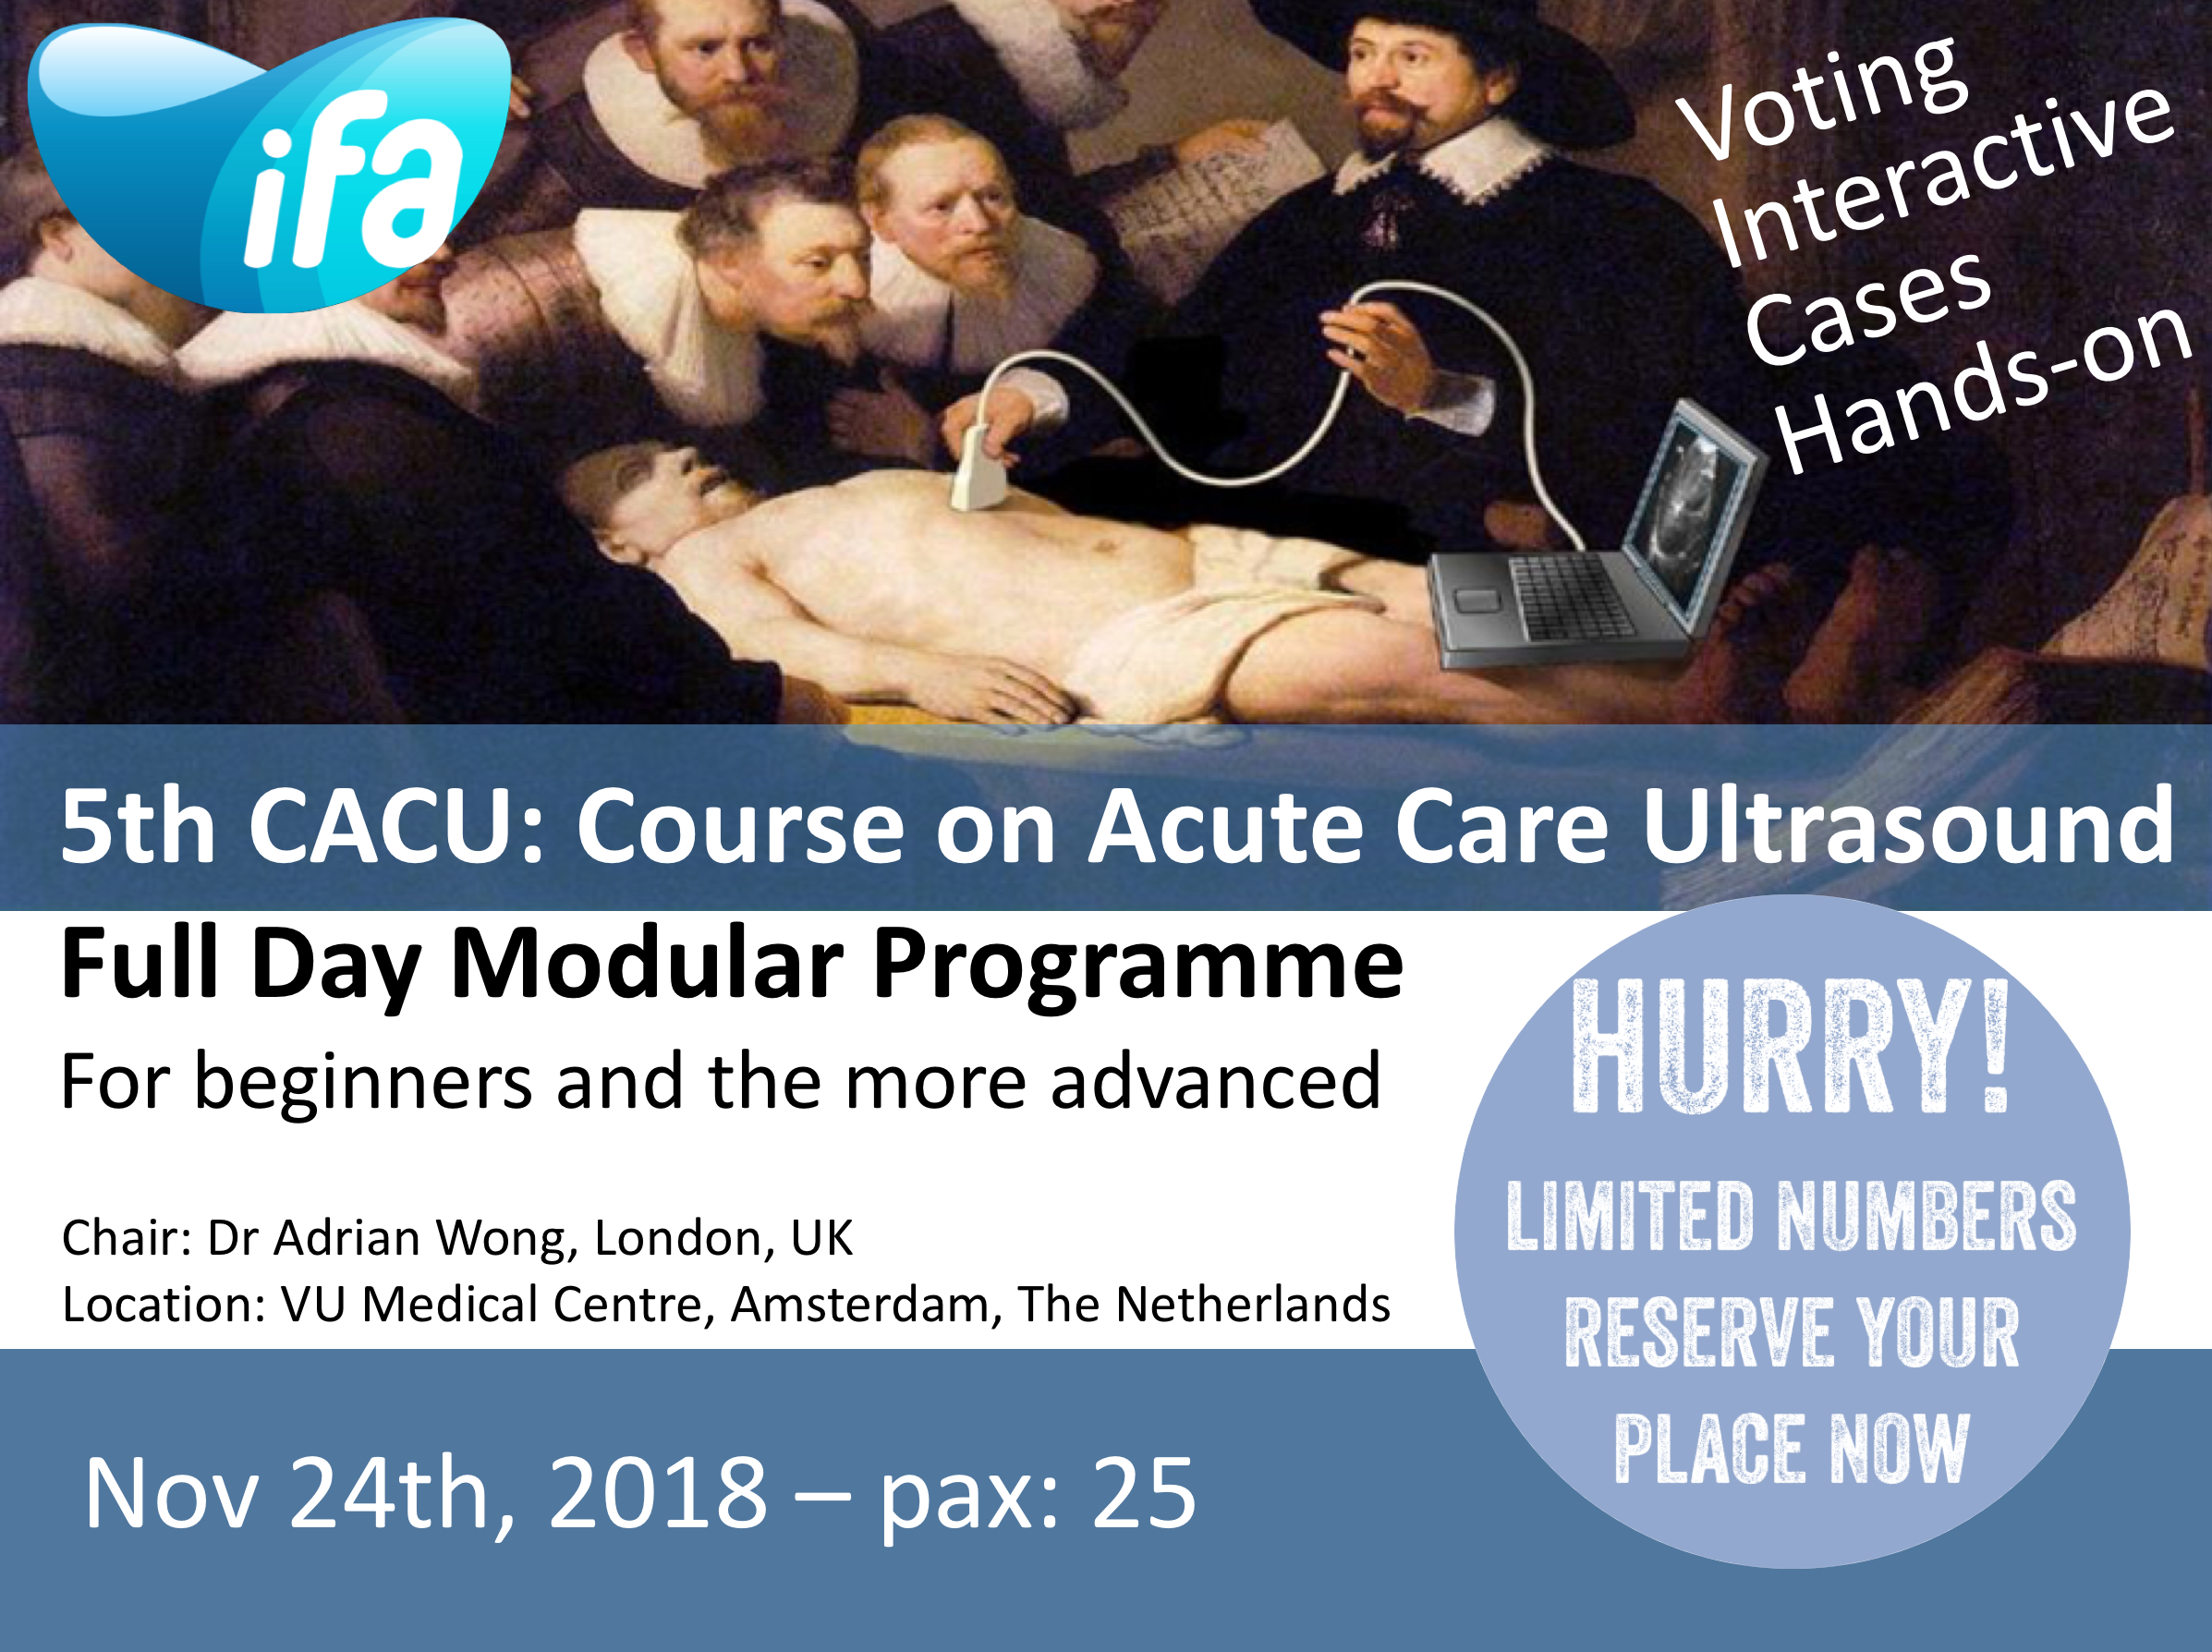 5th CACU: Course on Acute Care Ultrasound